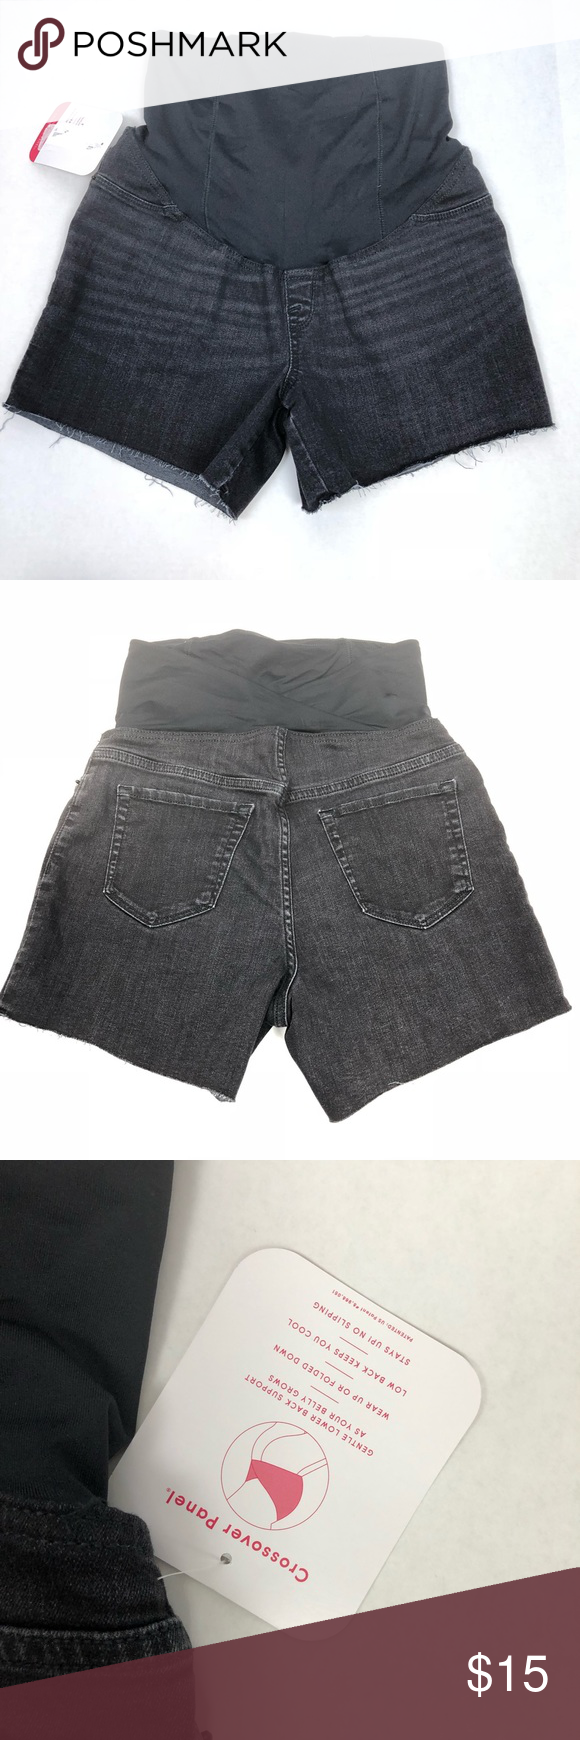 Isabel Maternity Black Denim Cutoff Shorts (4) Black denim cut off shorts by Isabel Maternity. Midi length. Cross over panel. New with tags. Isabel Maternity by Ingrid & Isabel Shorts #denimcutoffshorts Isabel Maternity Black Denim Cutoff Shorts (4) Black denim cut off shorts by Isabel Maternity. Midi length. Cross over panel. New with tags. Isabel Maternity by Ingrid & Isabel Shorts #denimcutoffshorts